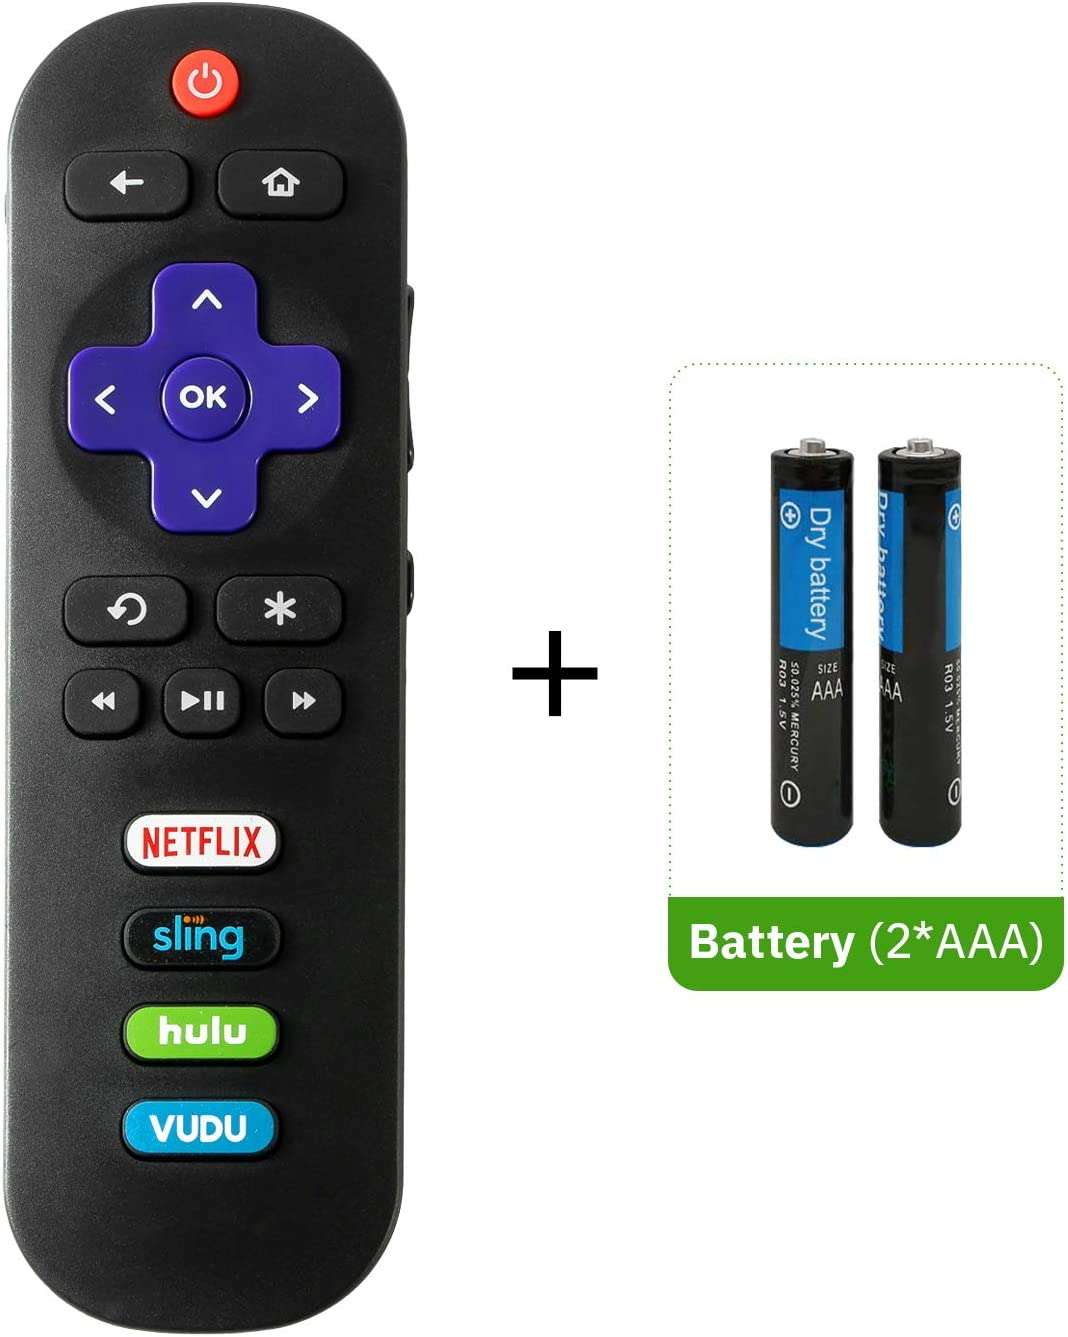 Bedycoon Replacement Remote Control and Batteries Compatible with All TCL Roku TV. with Sling and Hulu Shortcuts